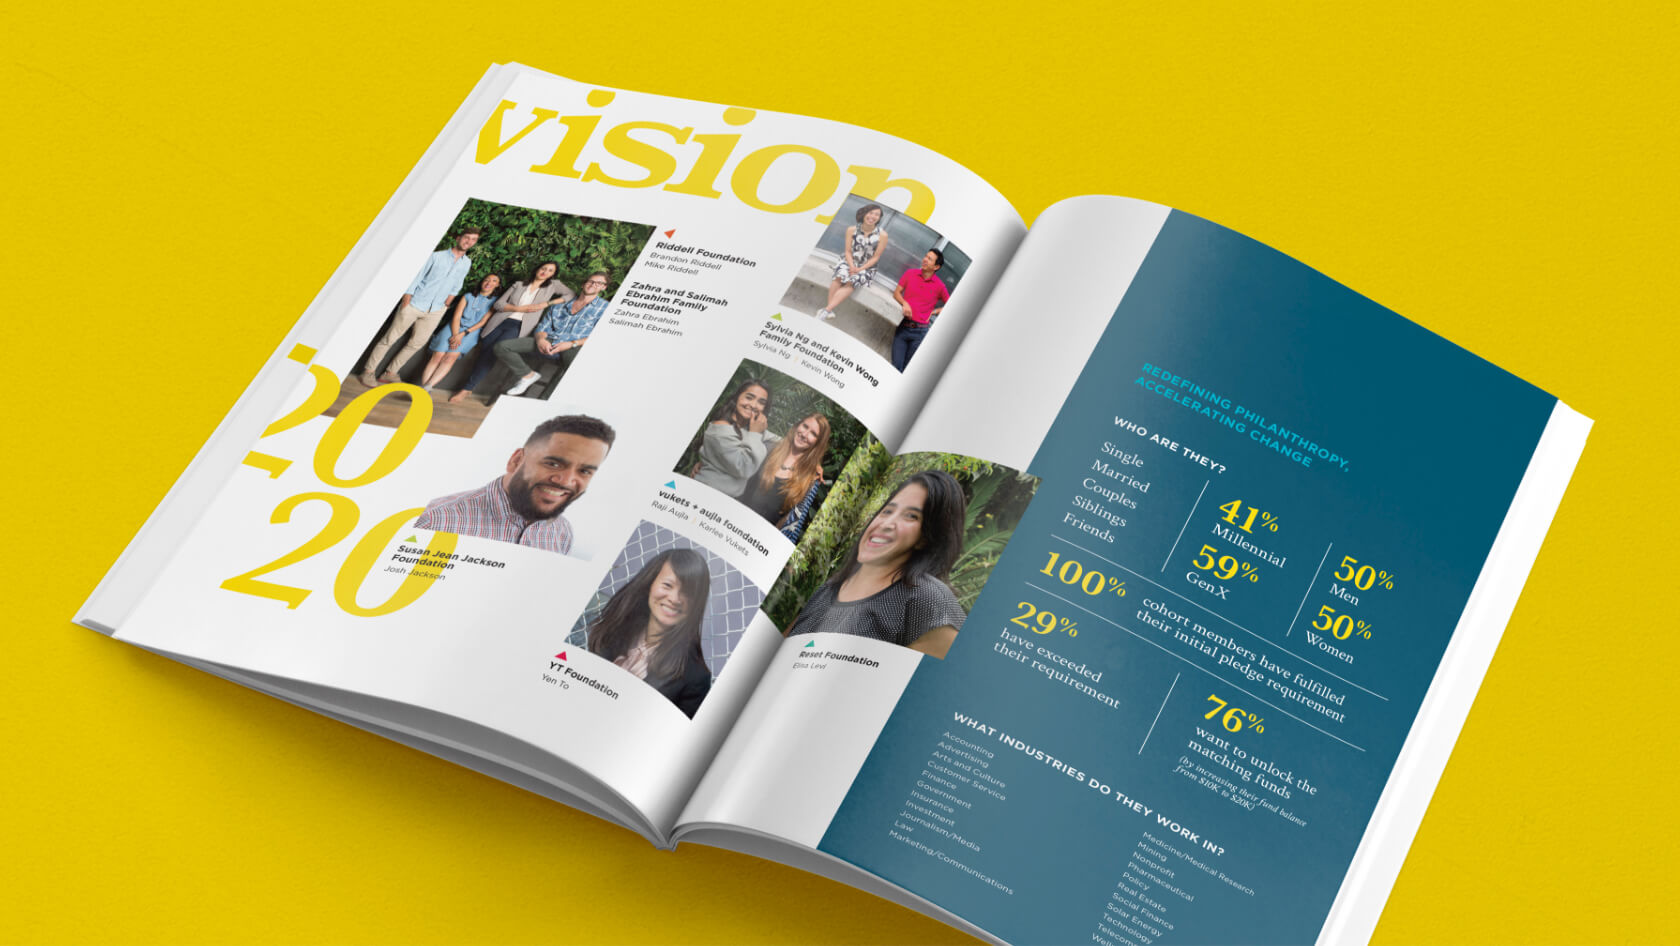 Double page spread displaying photos of participants from the Vision2020 program